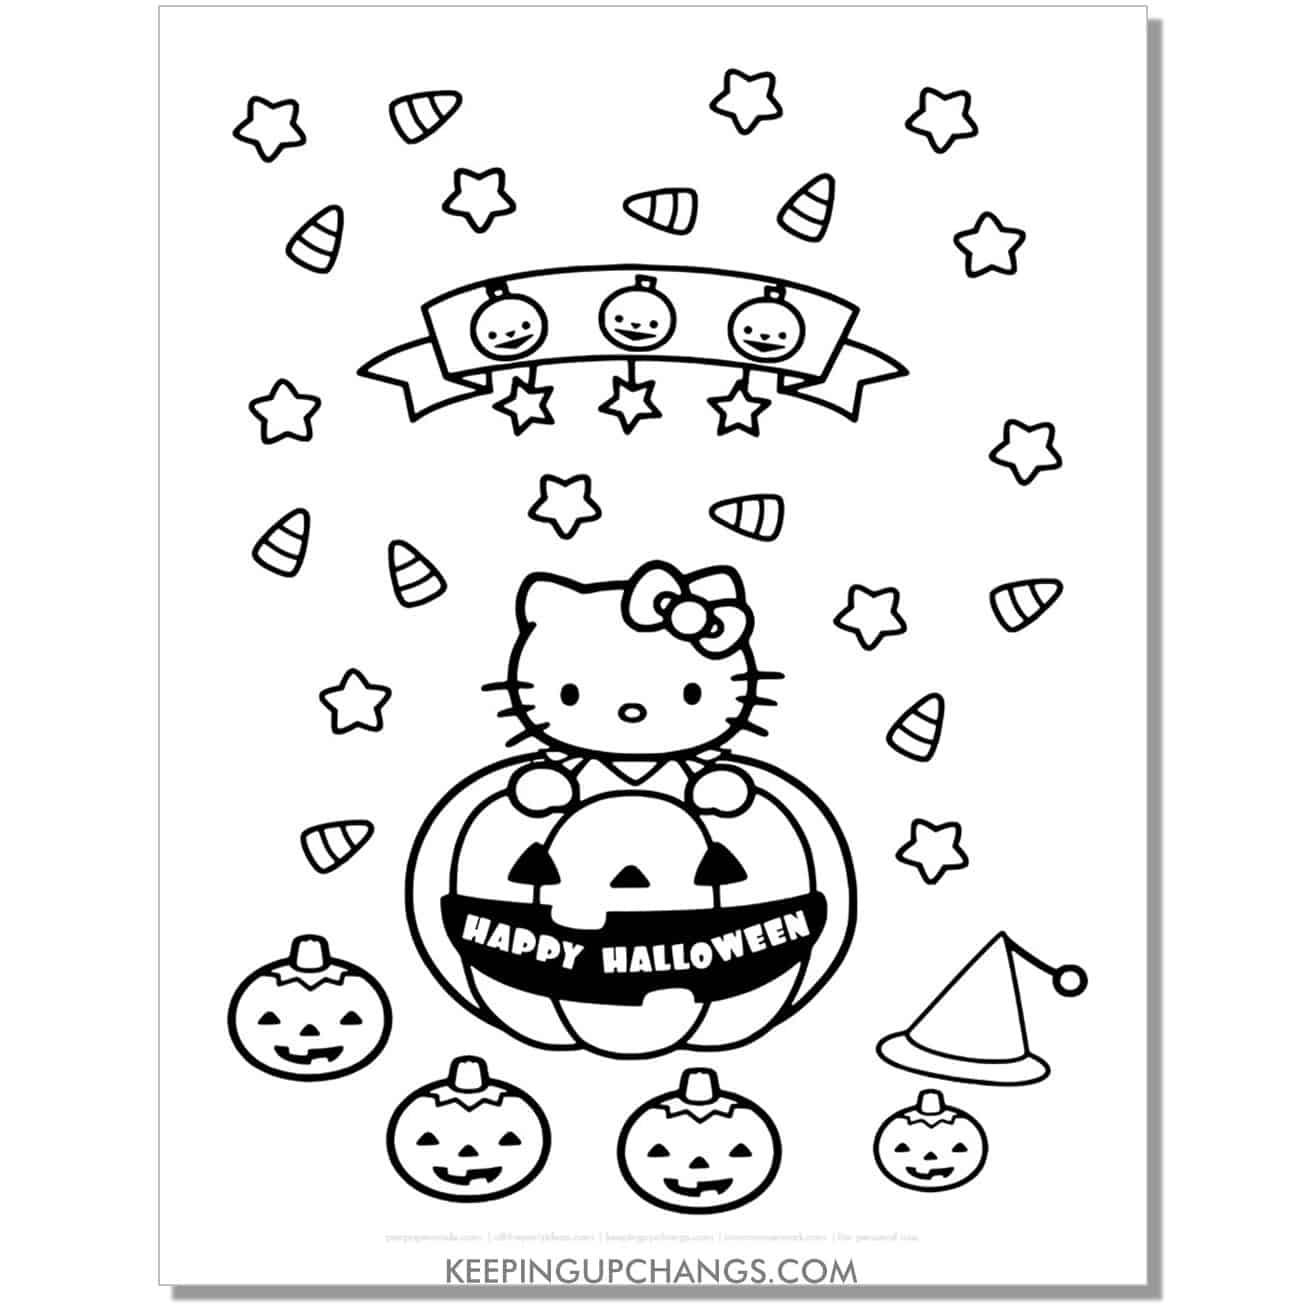 happy halloween candy corn, pumpkin hello kitty coloring page.